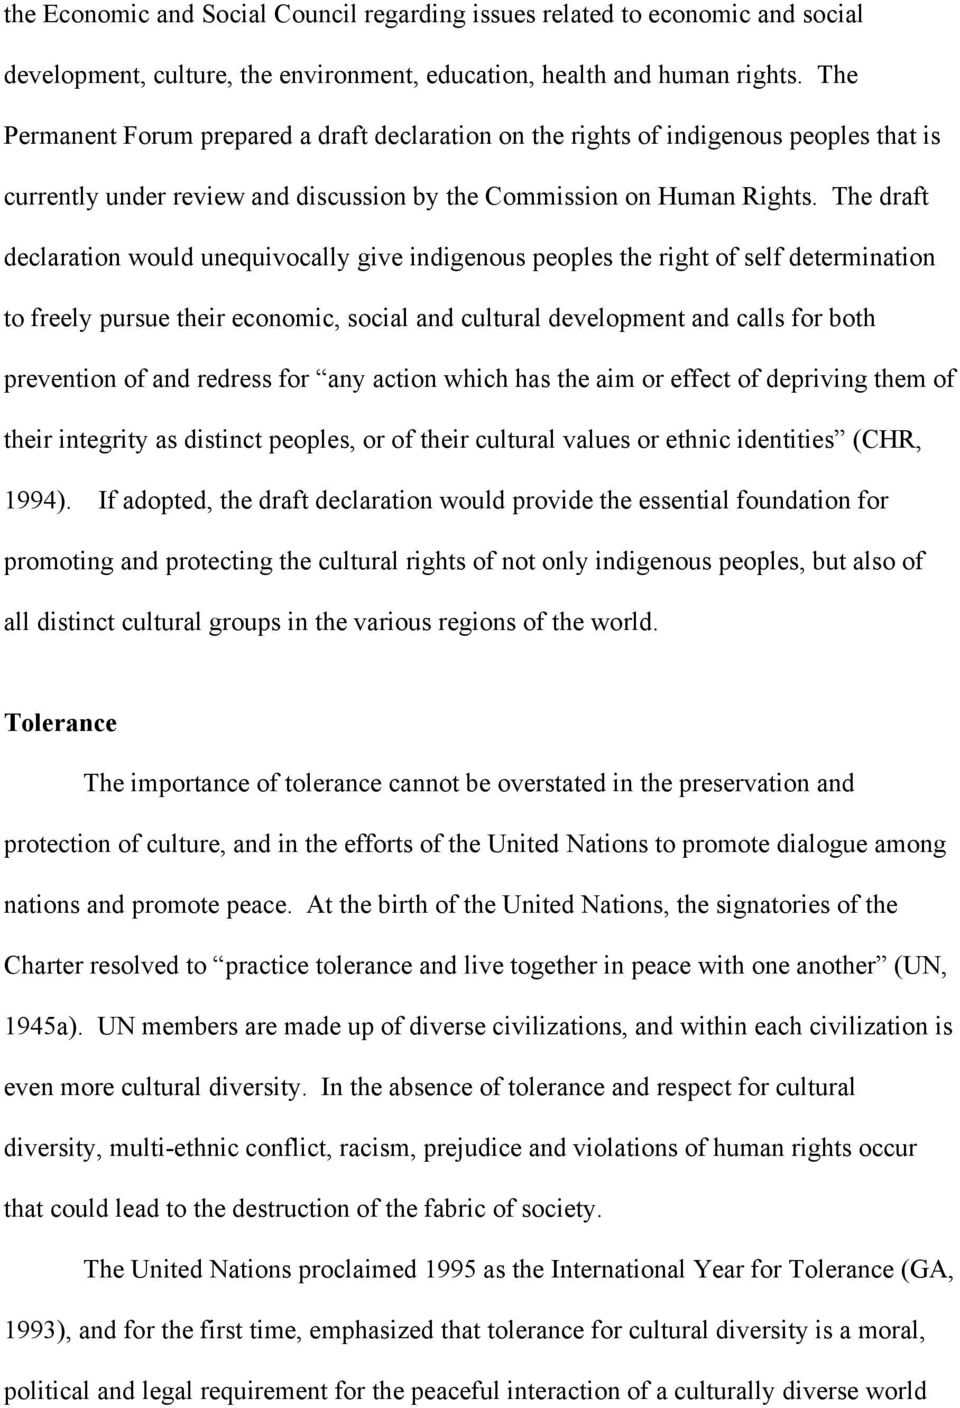 The draft declaration would unequivocally give indigenous peoples the right of self determination to freely pursue their economic, social and cultural development and calls for both prevention of and